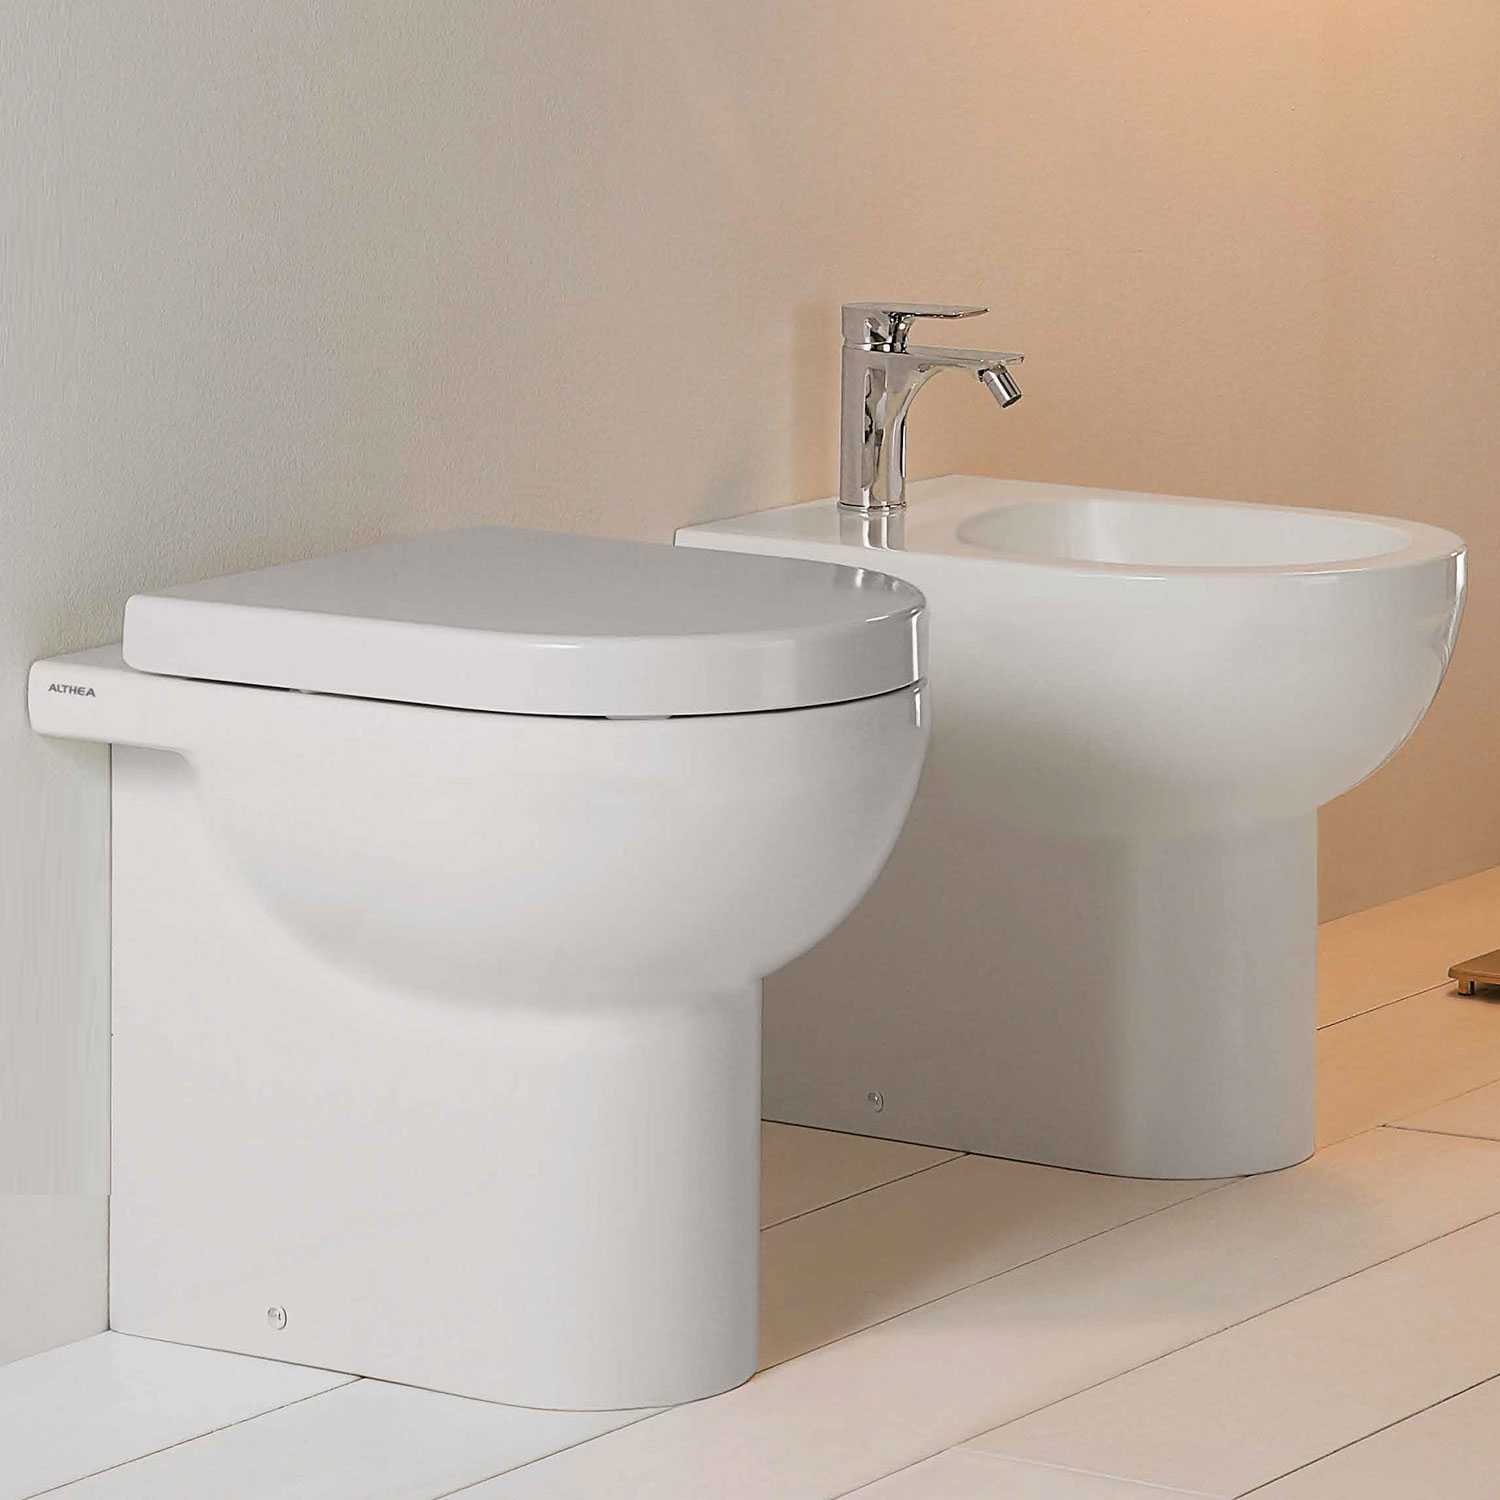 Sanitari bagno filomuro senza brida Althea Soul  wc, bidet e sedile soft close slim